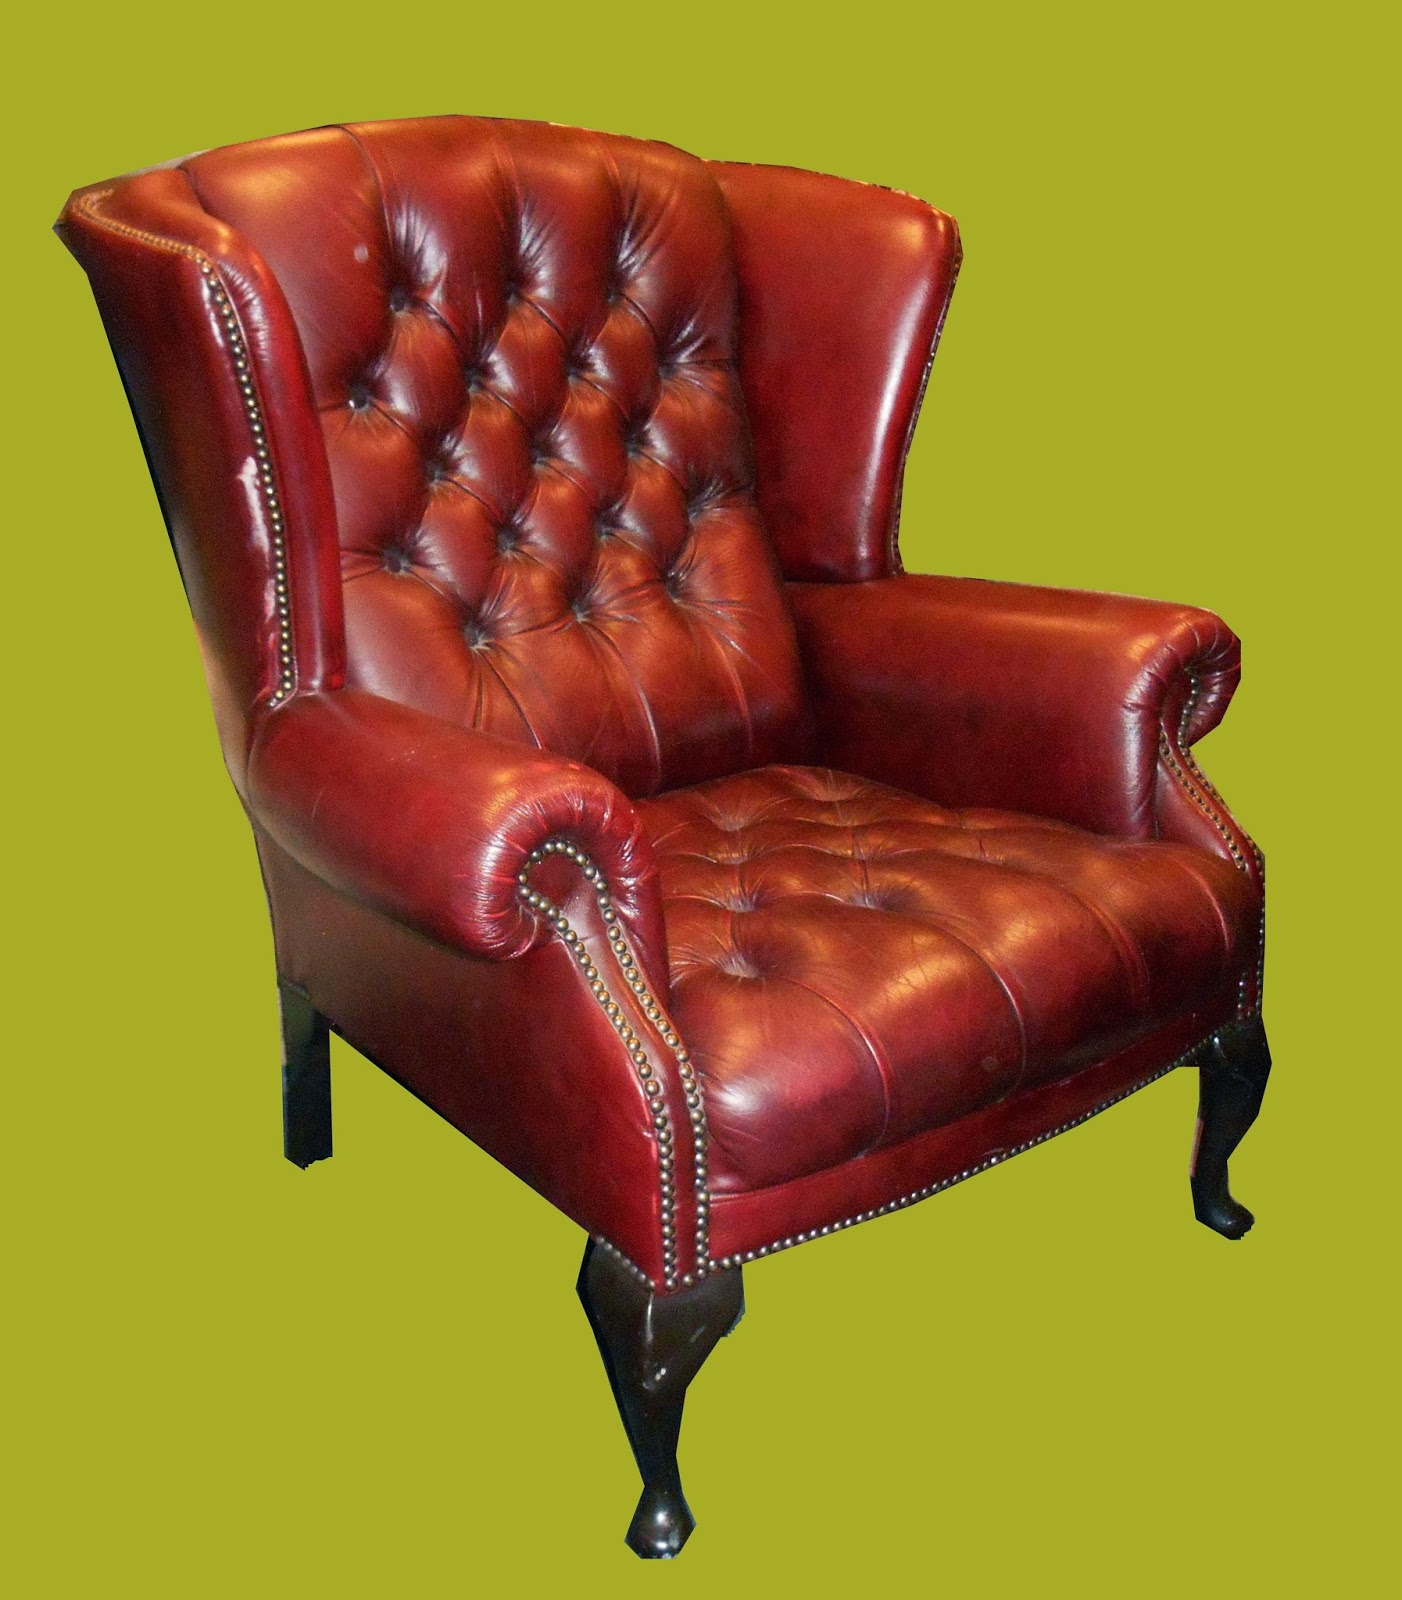 Leather Wingback Chairs South Africa Oversized Chair Recliner Uhuru Furniture And Collectibles Tufted Wing Back